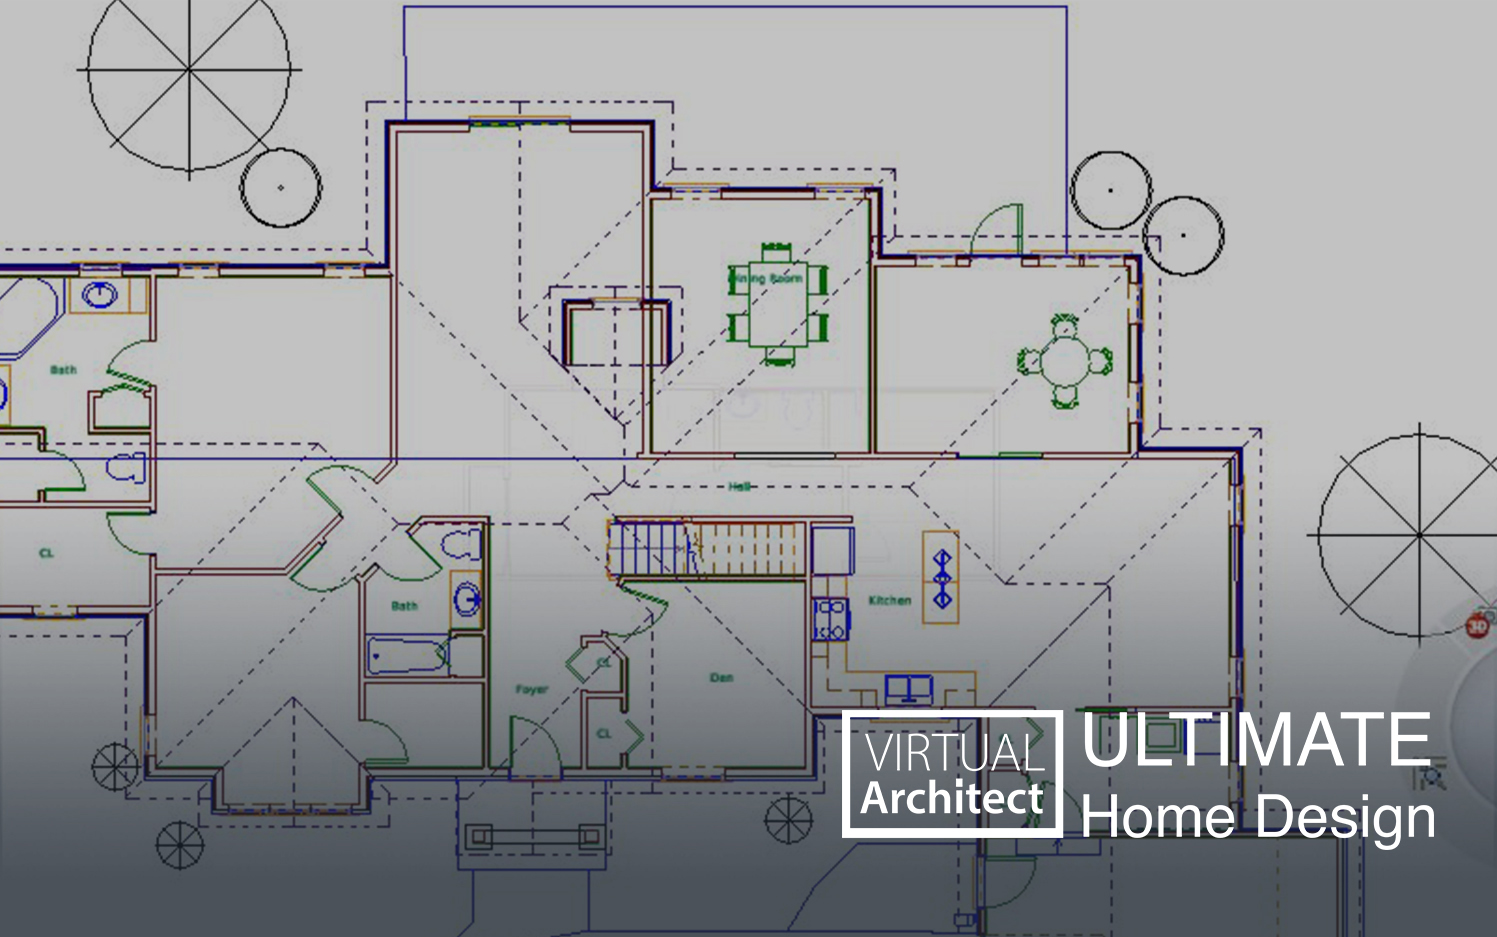 hight resolution of best home design software 2019 helping you design your dream home top ten reviews